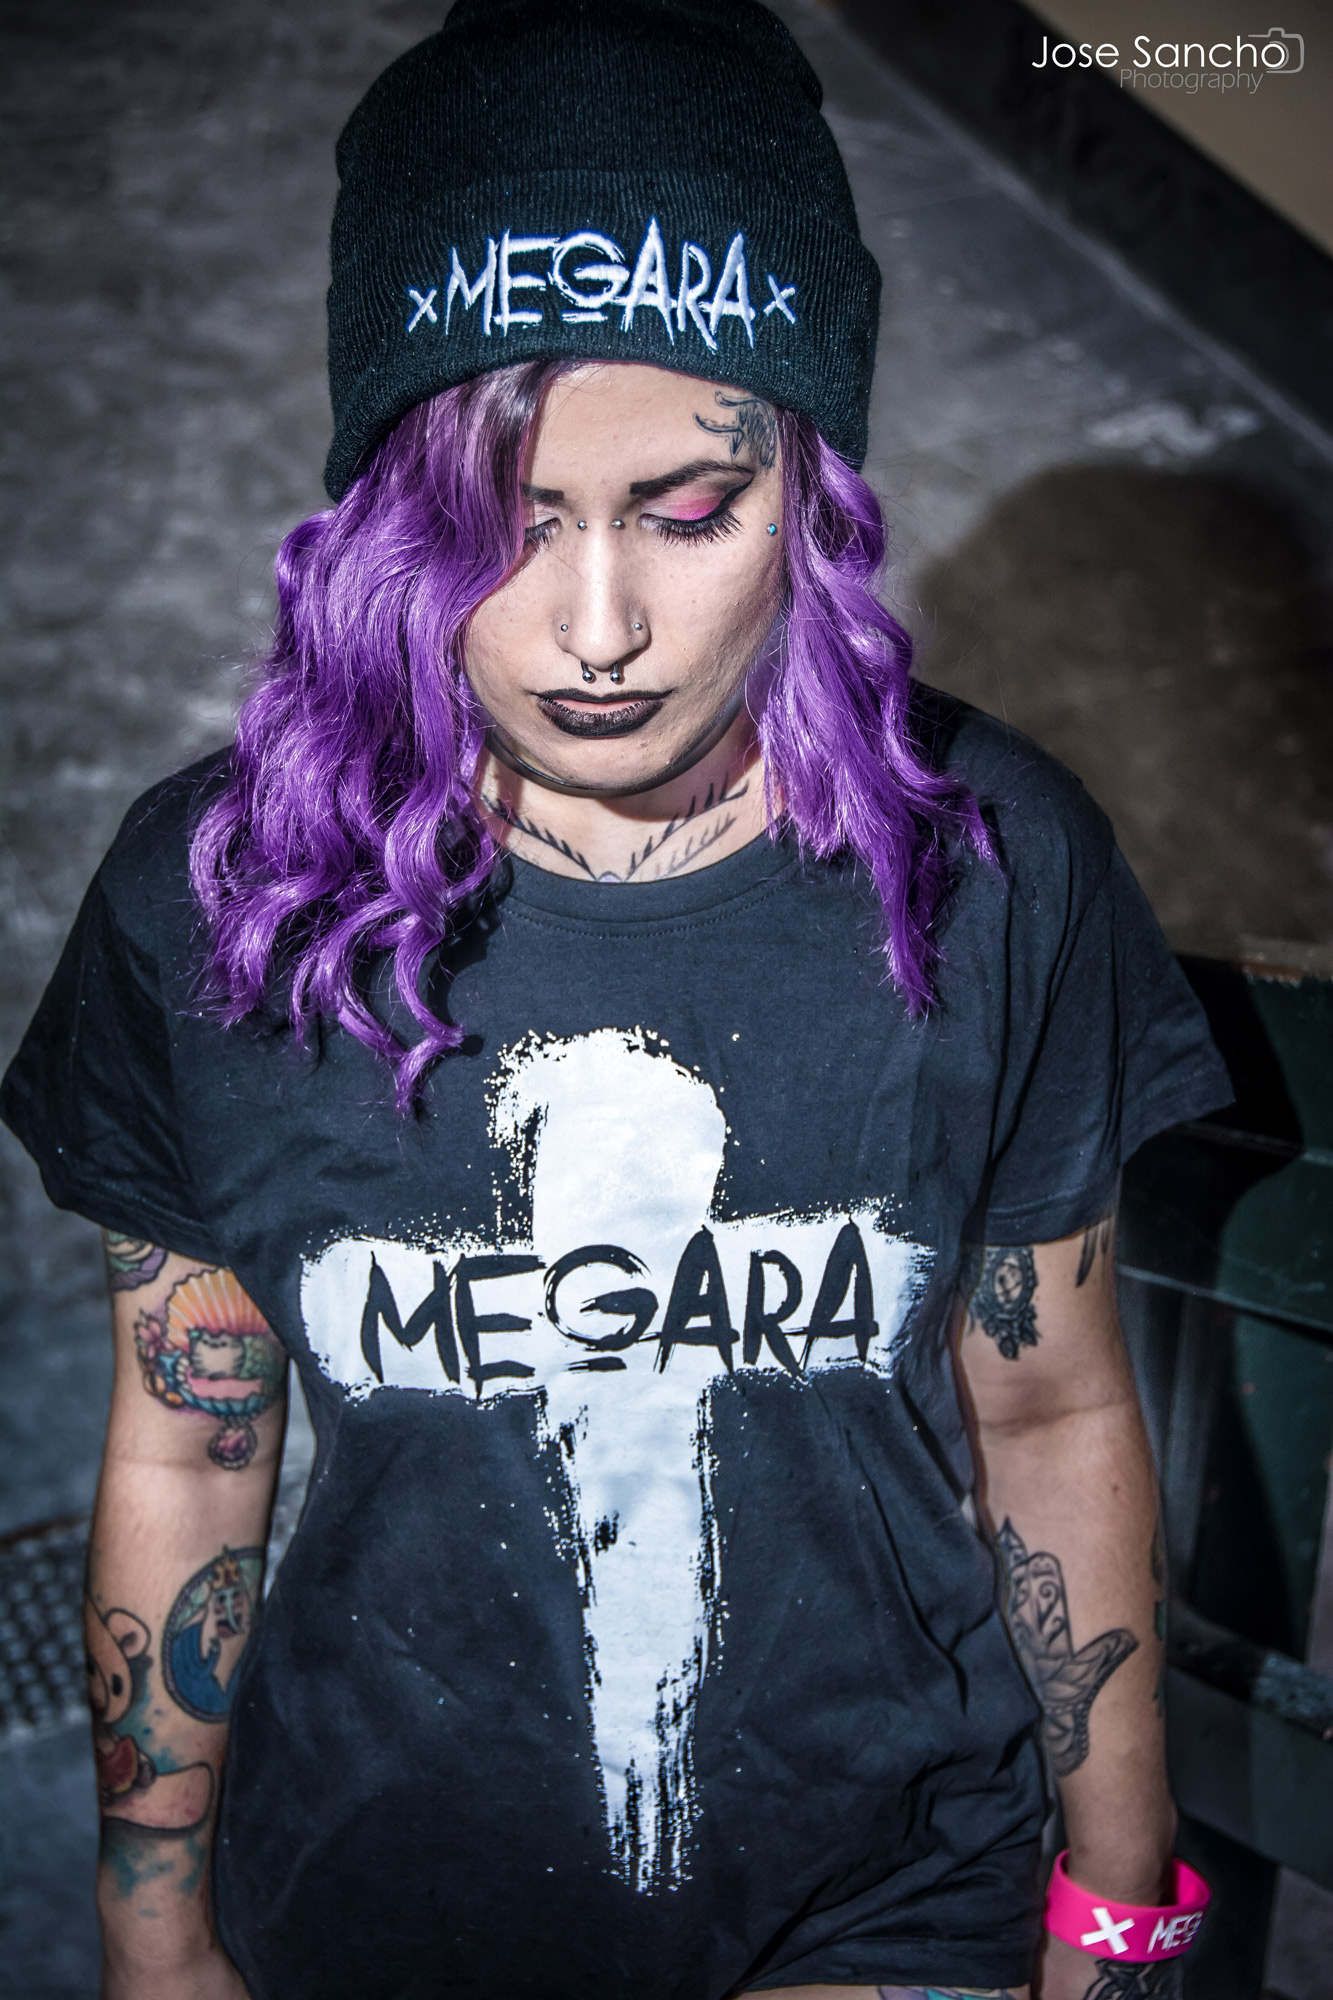 Merchan Megara - Jose Sancho Photography